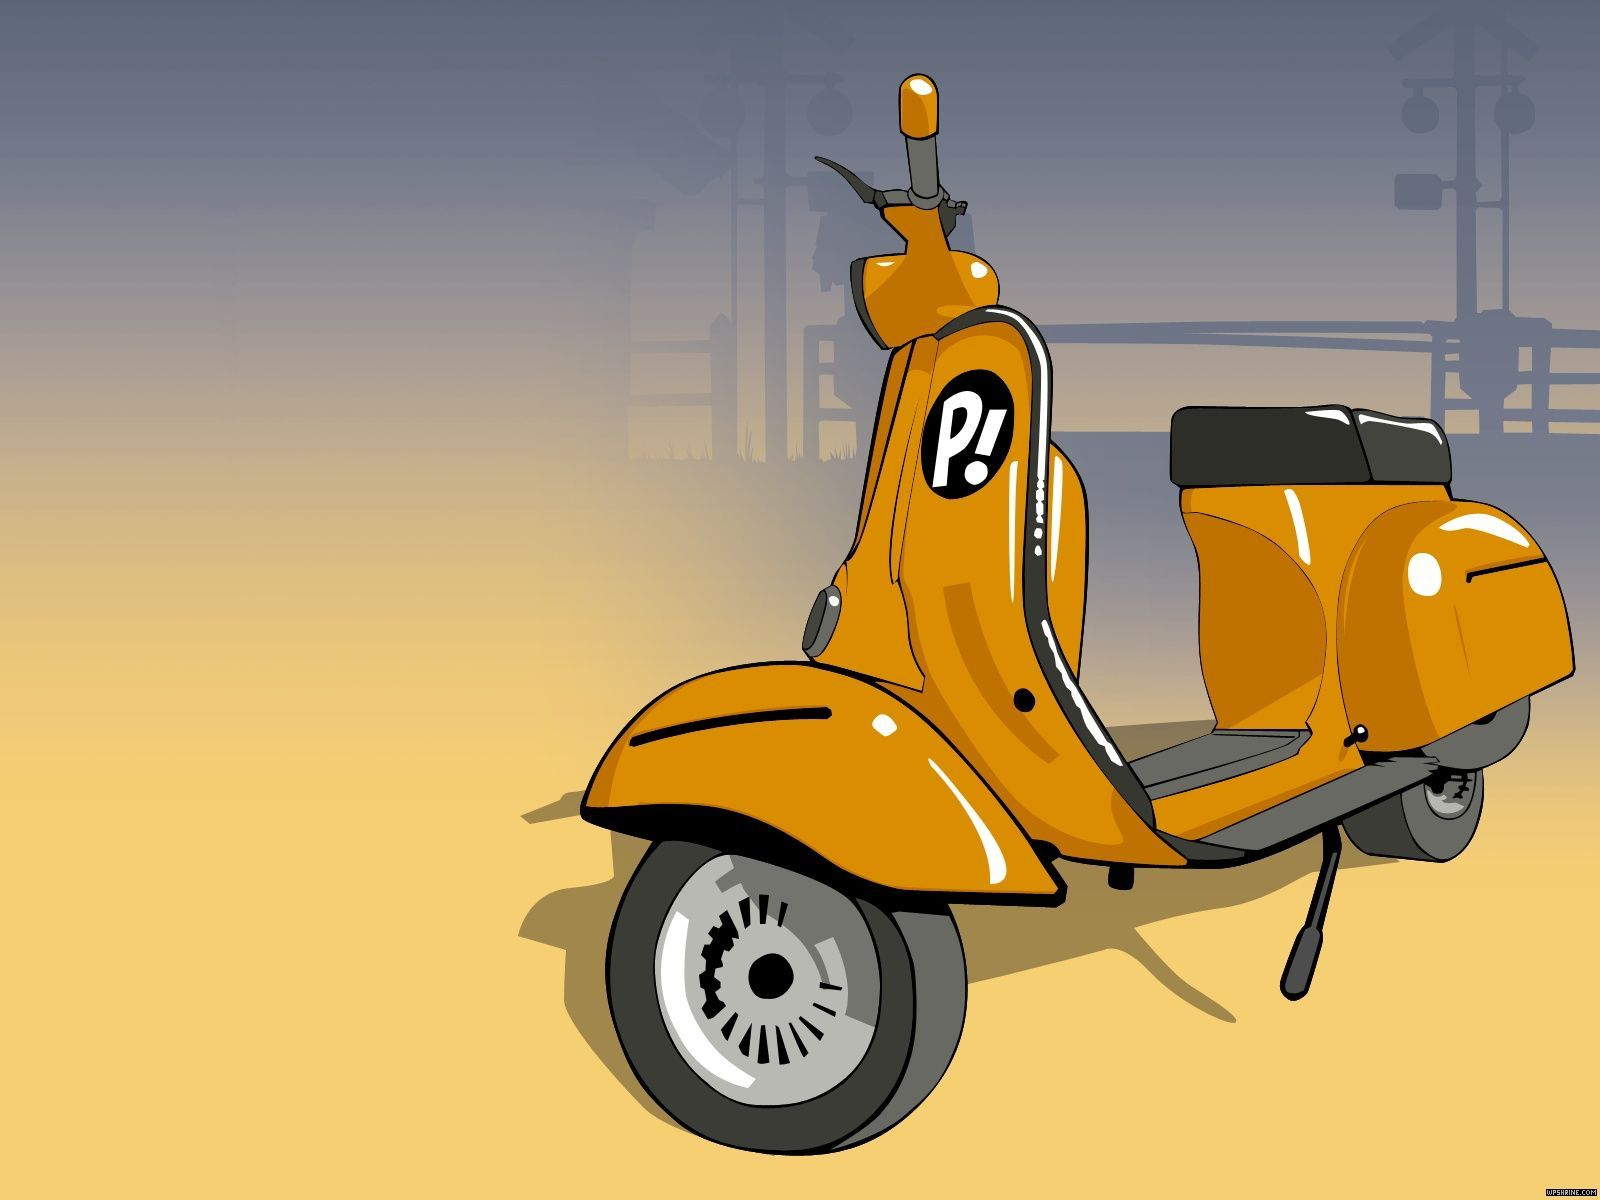 Hd wallpaper vespa - Scootering Backgrounds Images Hunting Signs Images Picture Of A 1920 1200 Wallpapers Scooter 34 Hd Wallpapercartoon Wallpaperwallpapersvespa